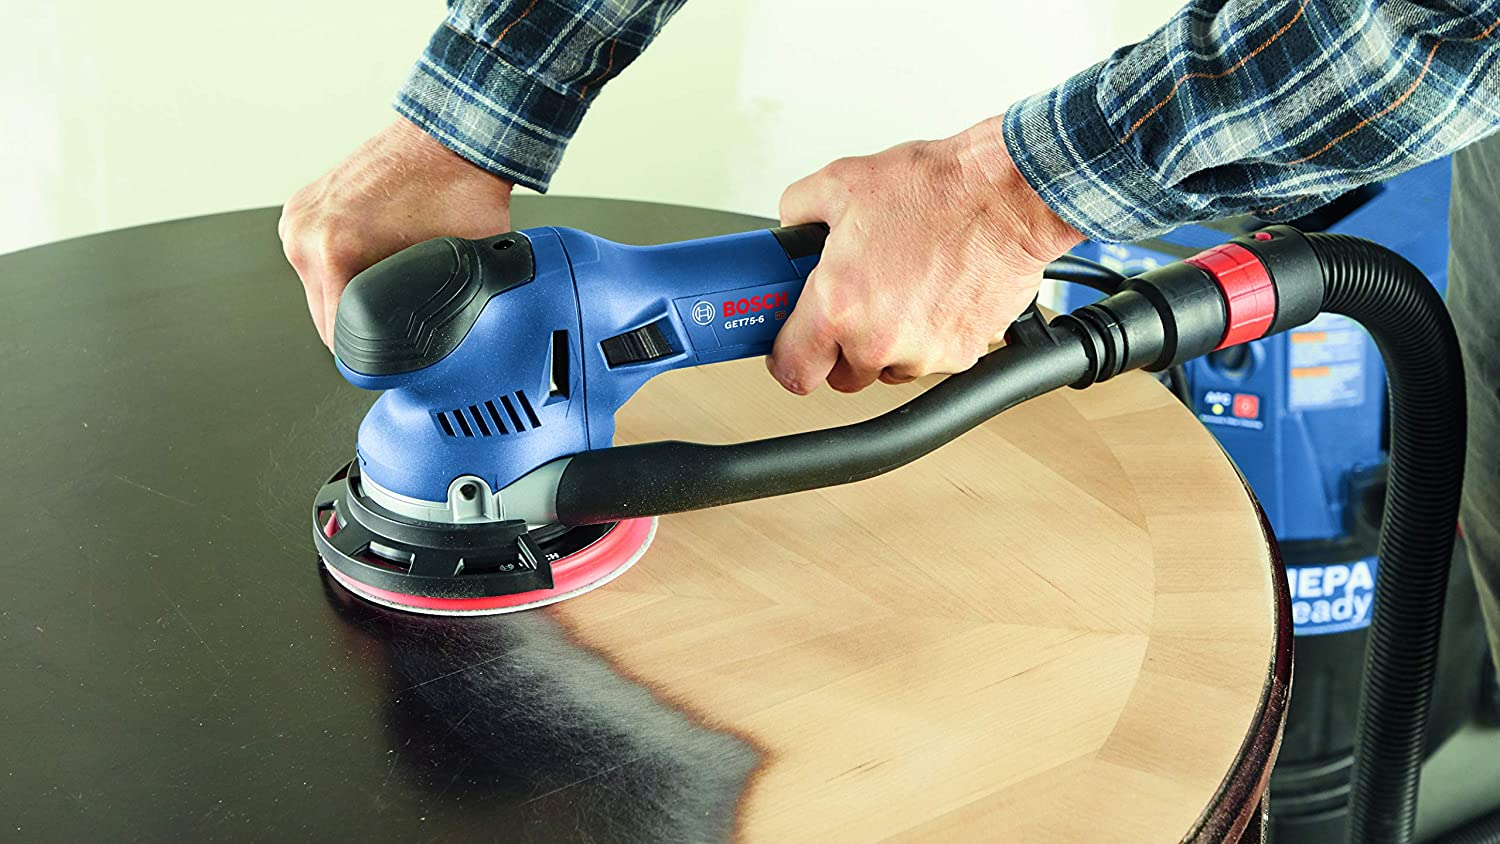 BOSCH GET75-6N Electric Sander/Polisher for Stripping Paint